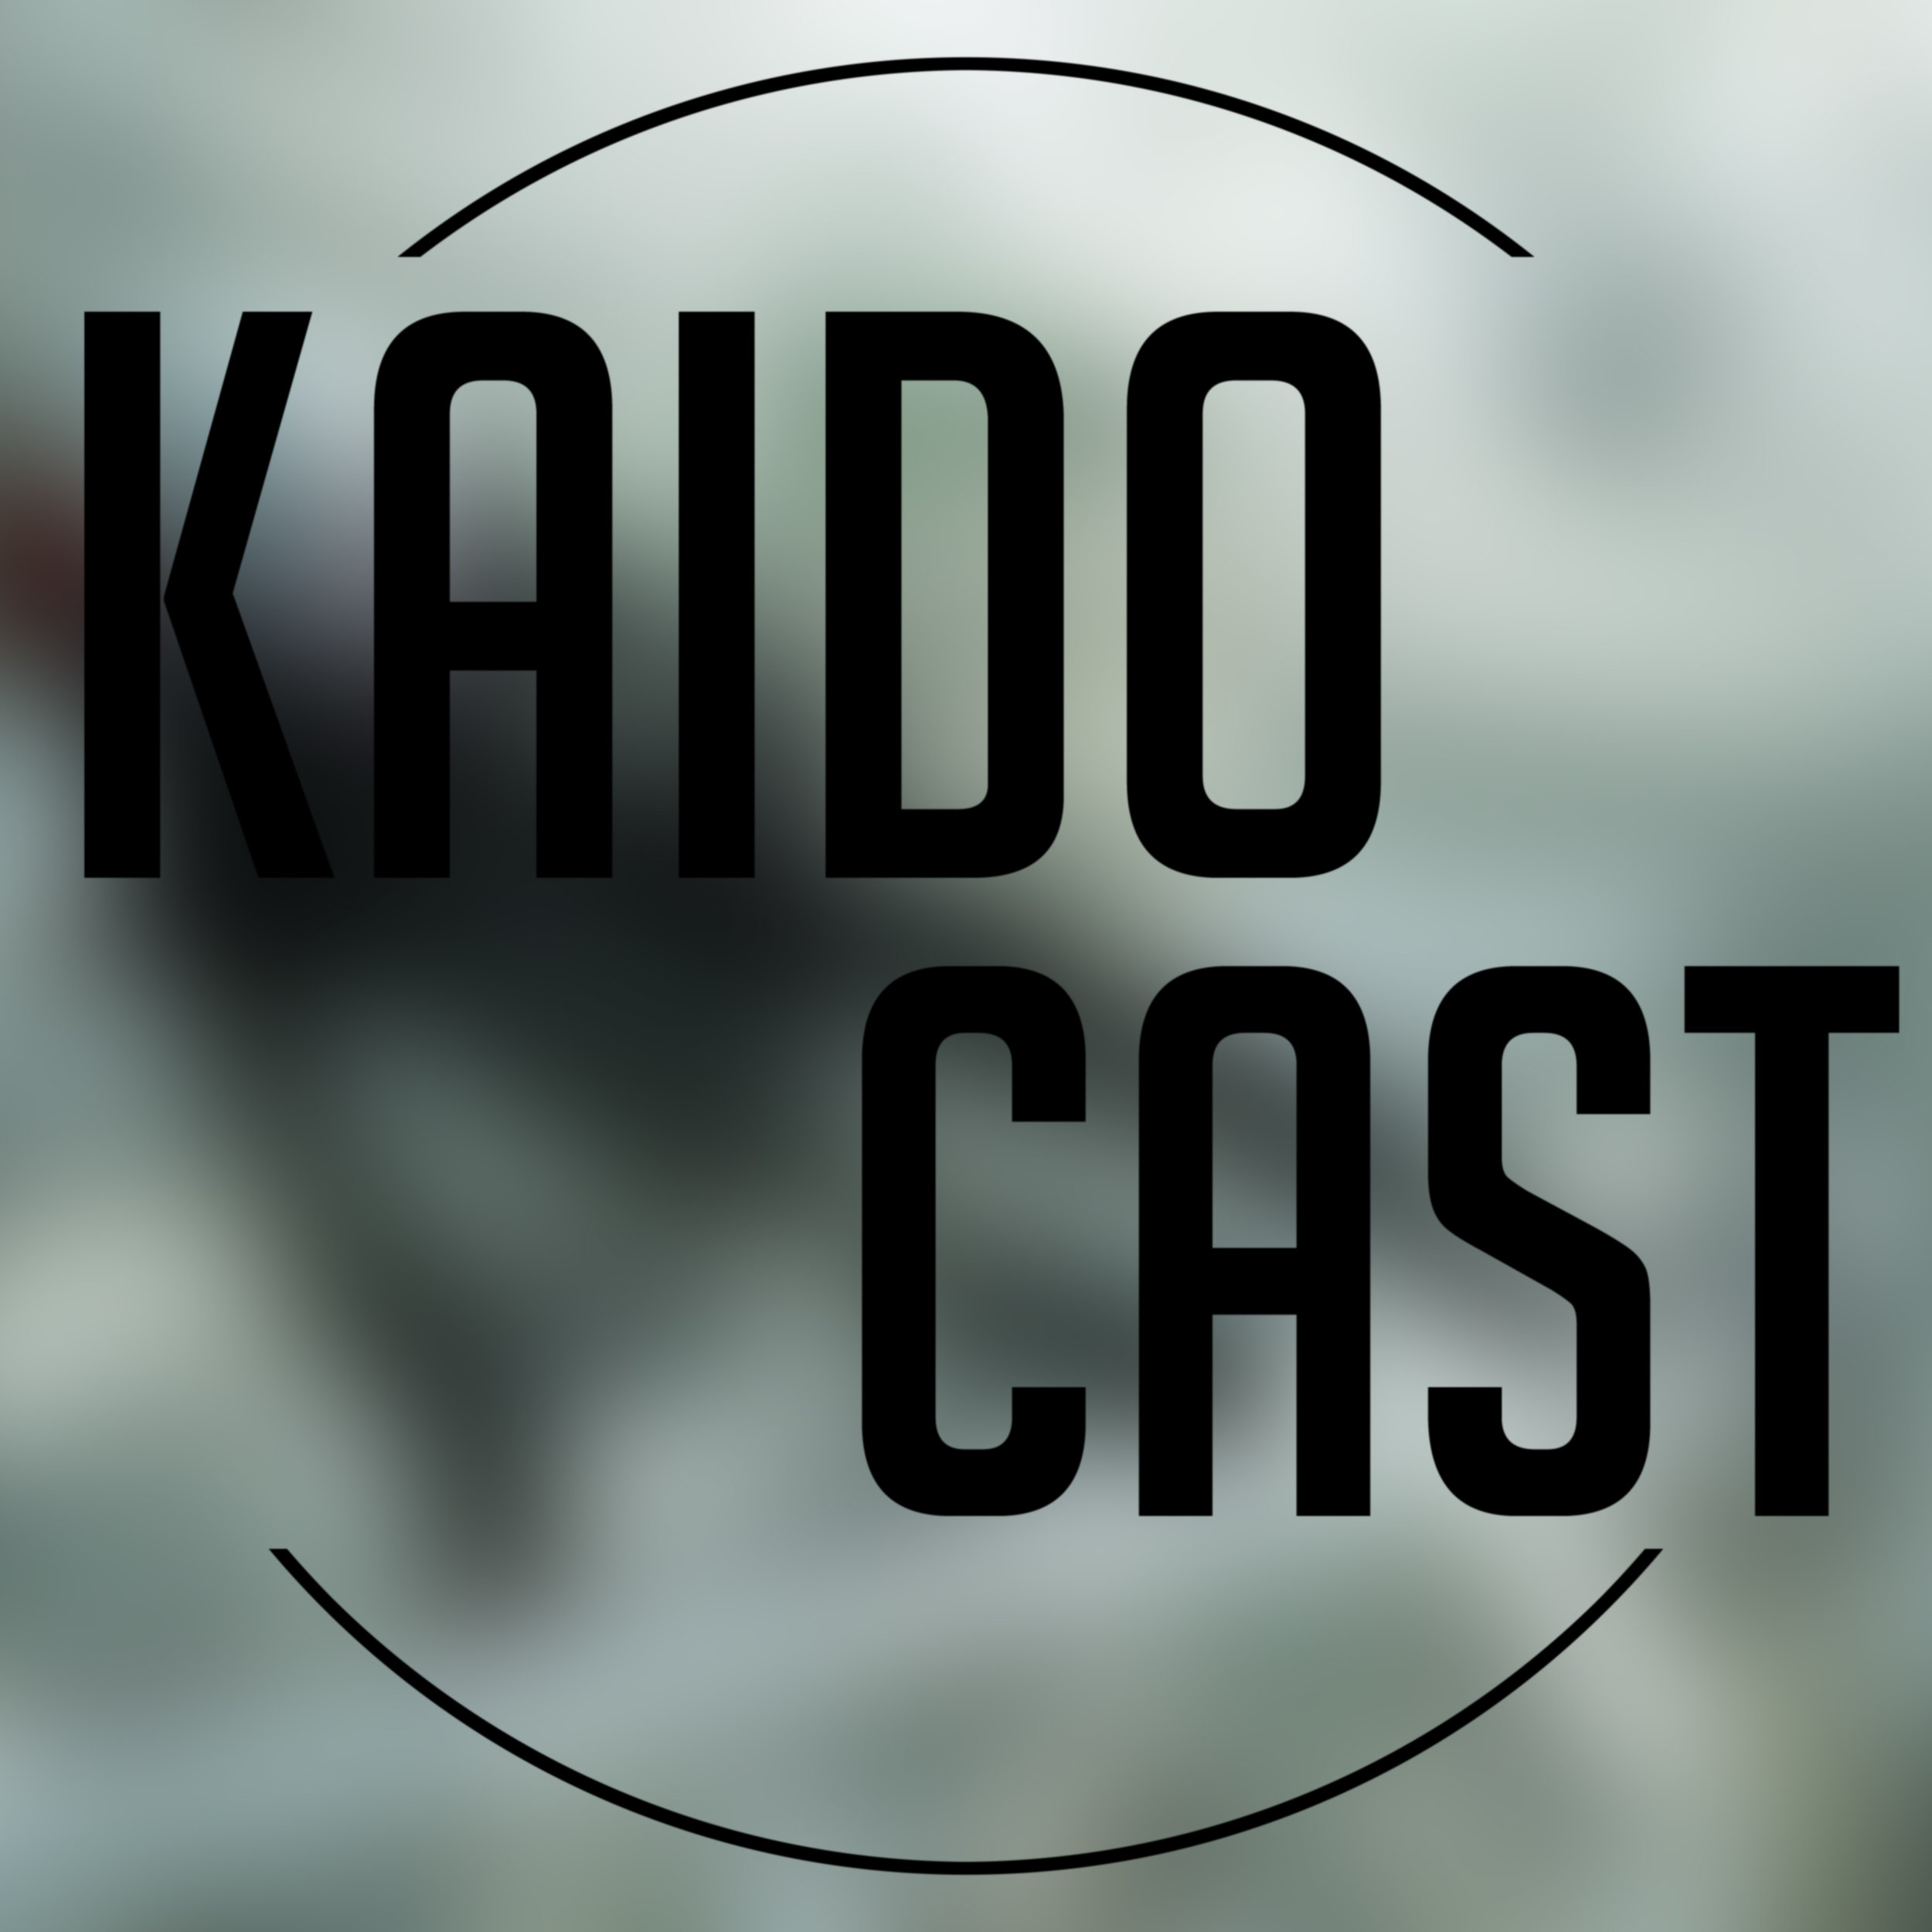 KAIDO Cast 16 - Ecco the Rob - This week there were some technical difficulties, but don't let that lead you away! Dave tells us about a new game called Echo, while continuing our conversation on Metroid and Divinity. Rob dabbles…